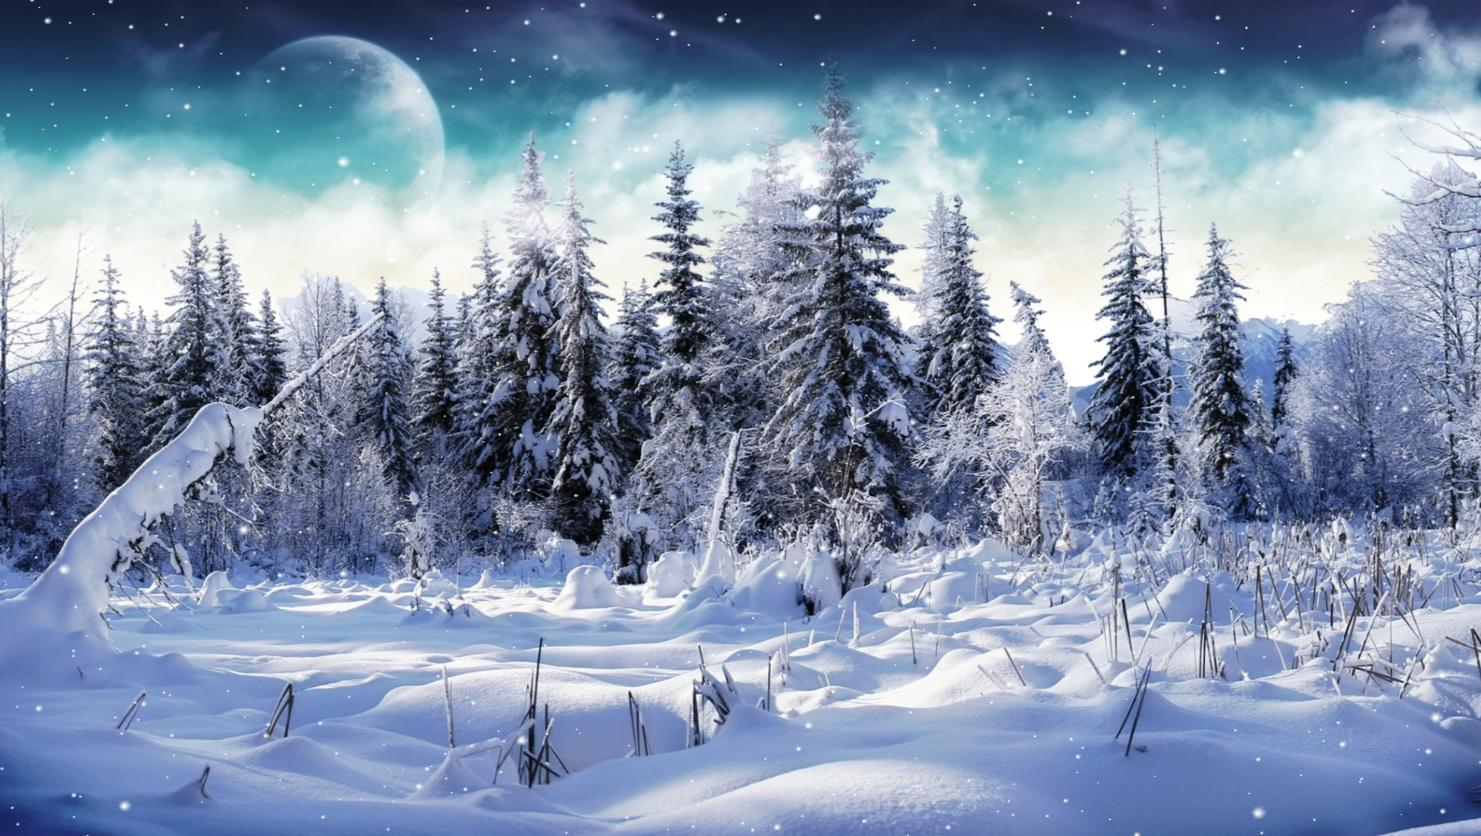 Winter Wallpaper And Screensavers Cold Winter Screensaver Animated Wallpaper Torrent Download